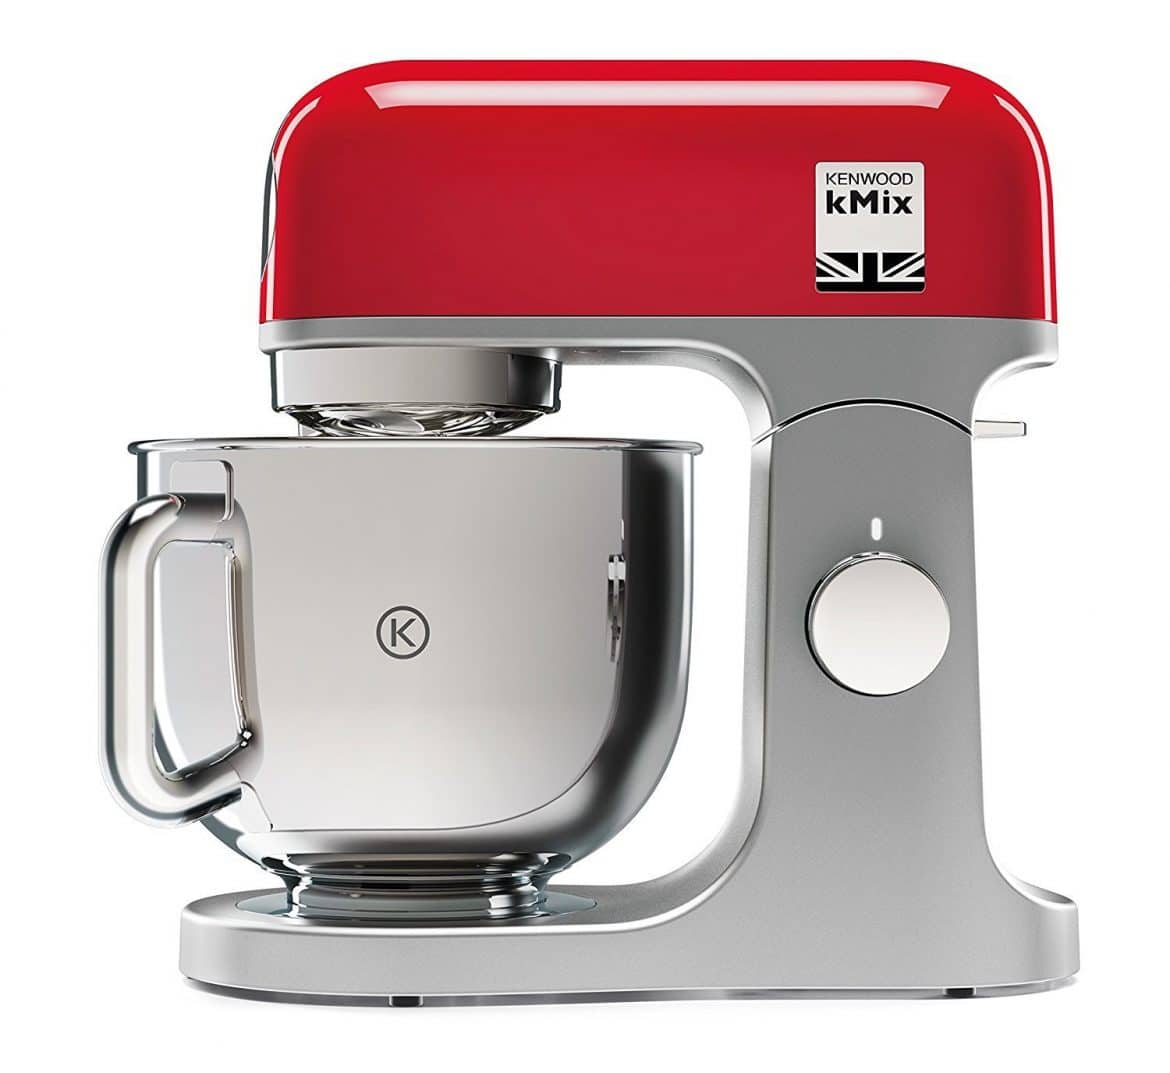 Kmix le nouveau robot de kenwood kiss my chef - Kitchenaid ou kenwood 2017 ...